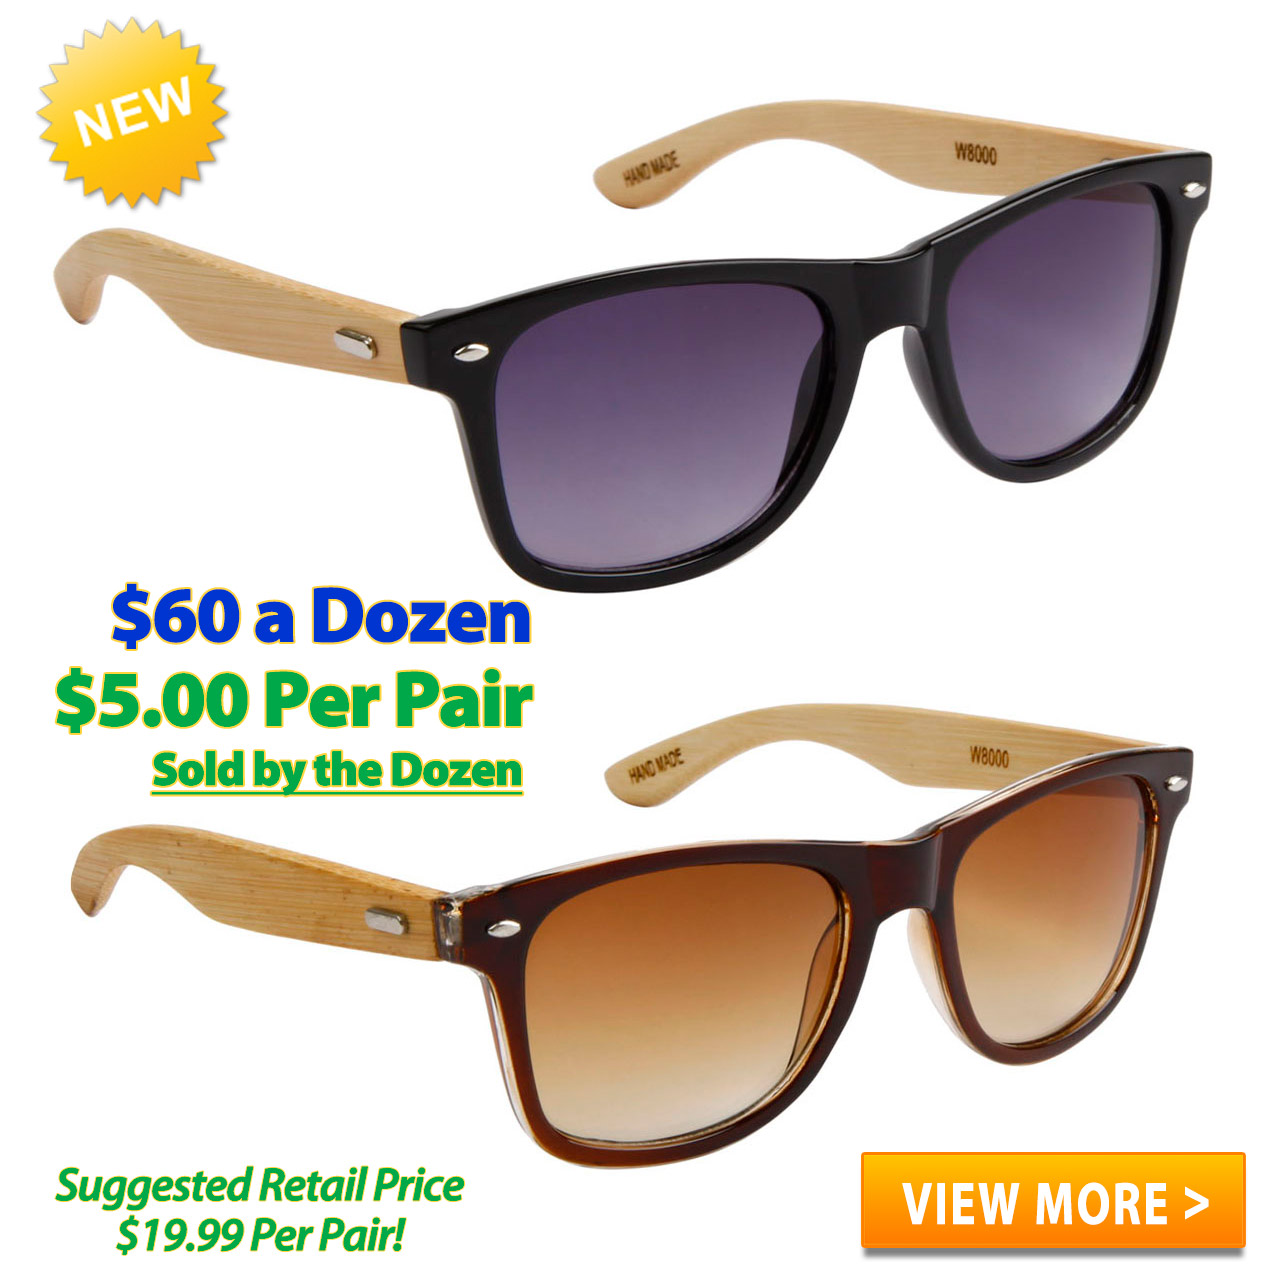 Bamboo Sunglasses Wholesale